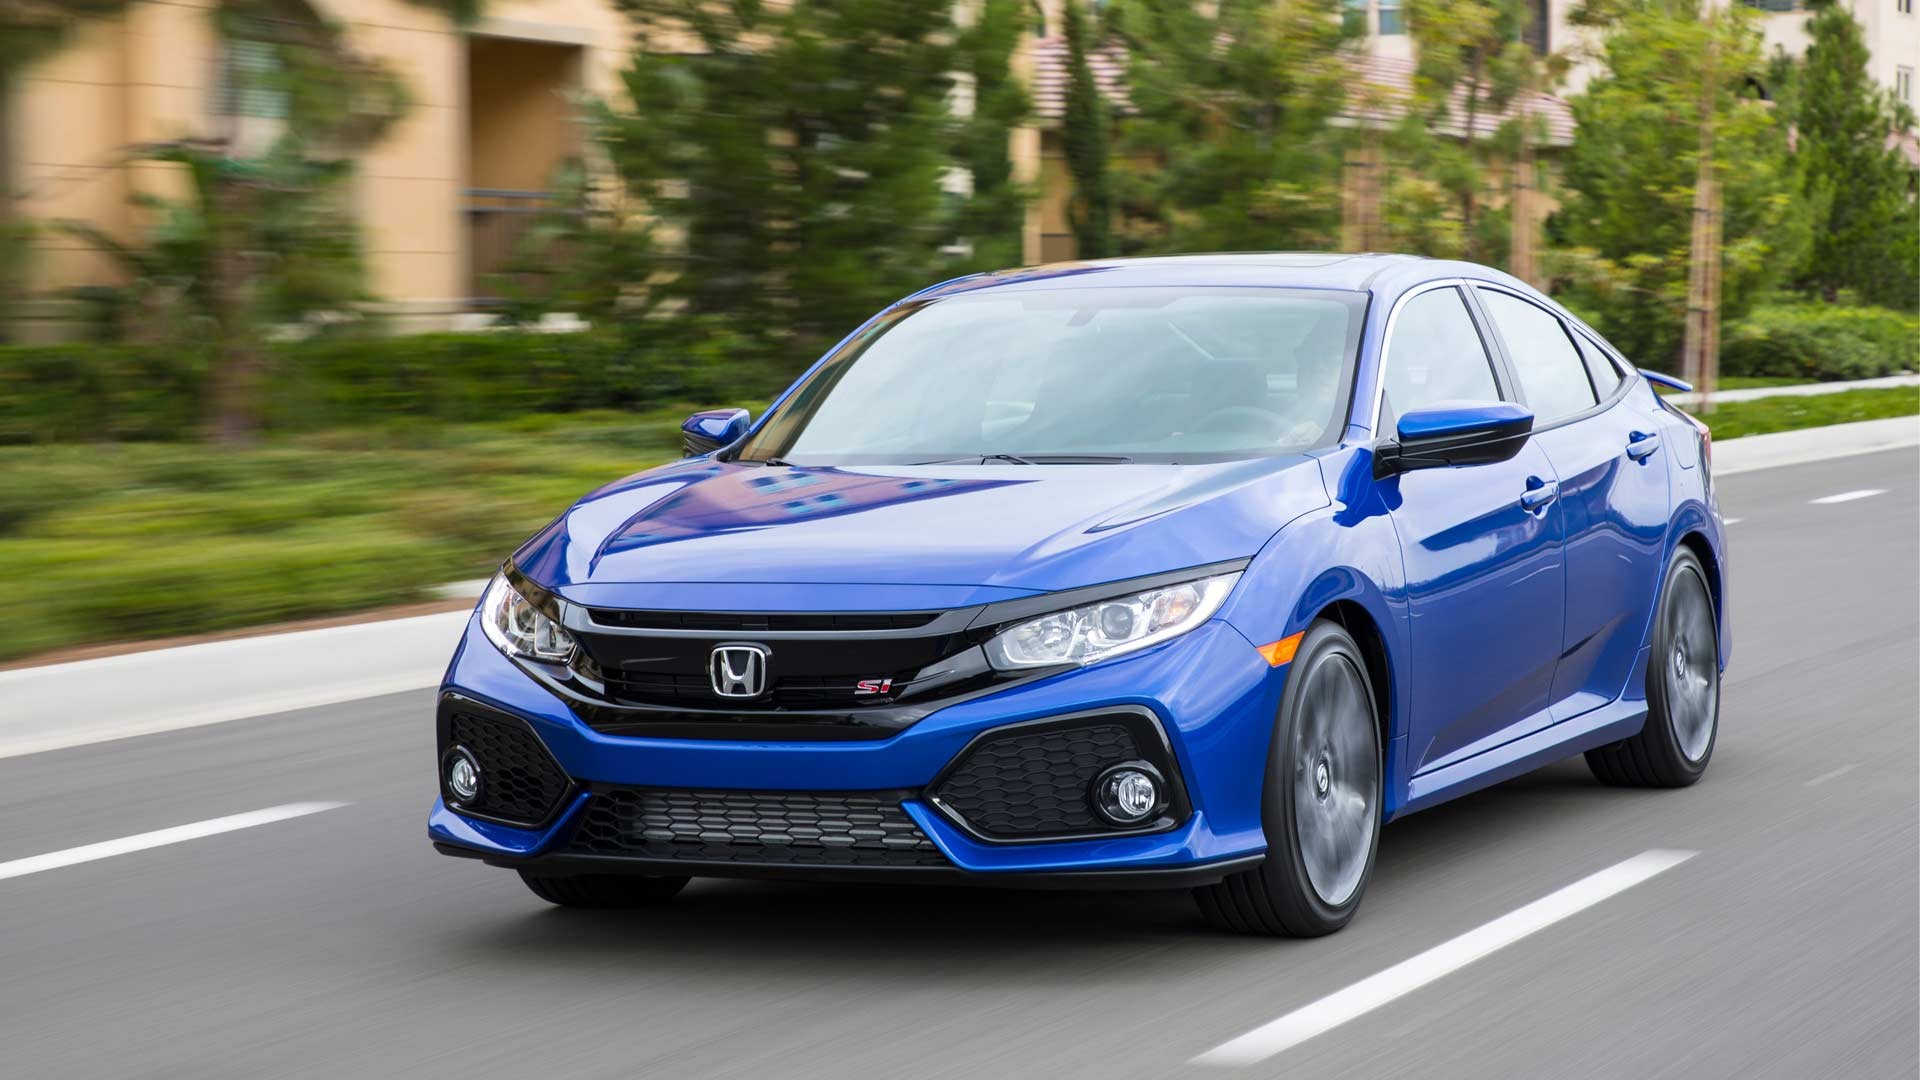 2019-Honda-Civic-Si-Sedan_5